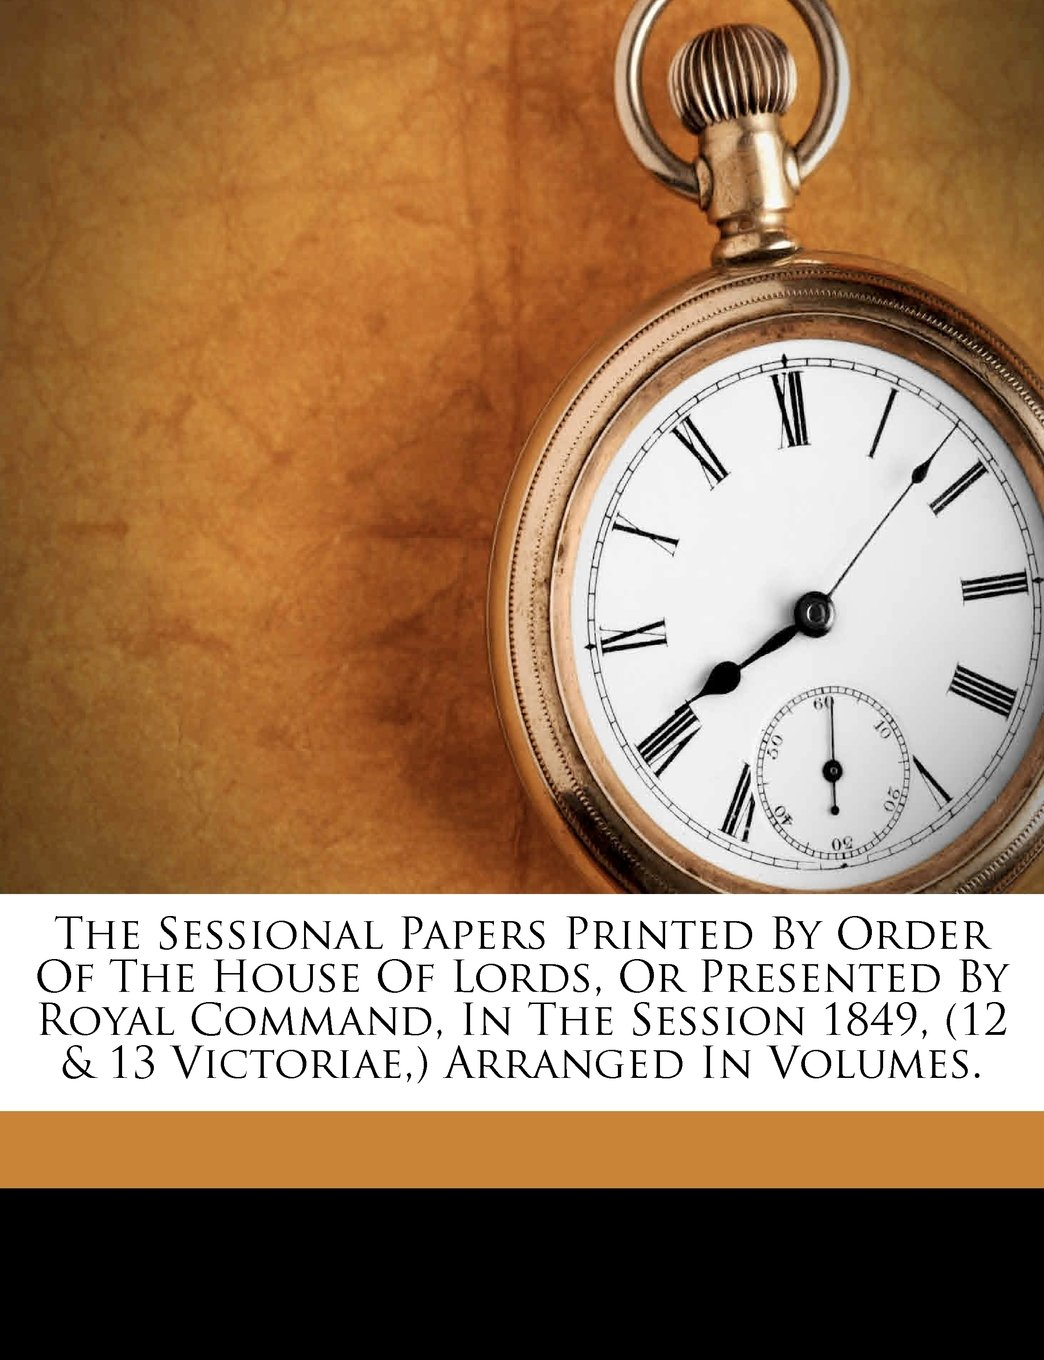 Download The Sessional Papers Printed By Order Of The House Of Lords, Or Presented By Royal Command, In The Session 1849, (12 & 13 Victoriae,) Arranged In Volumes. ebook